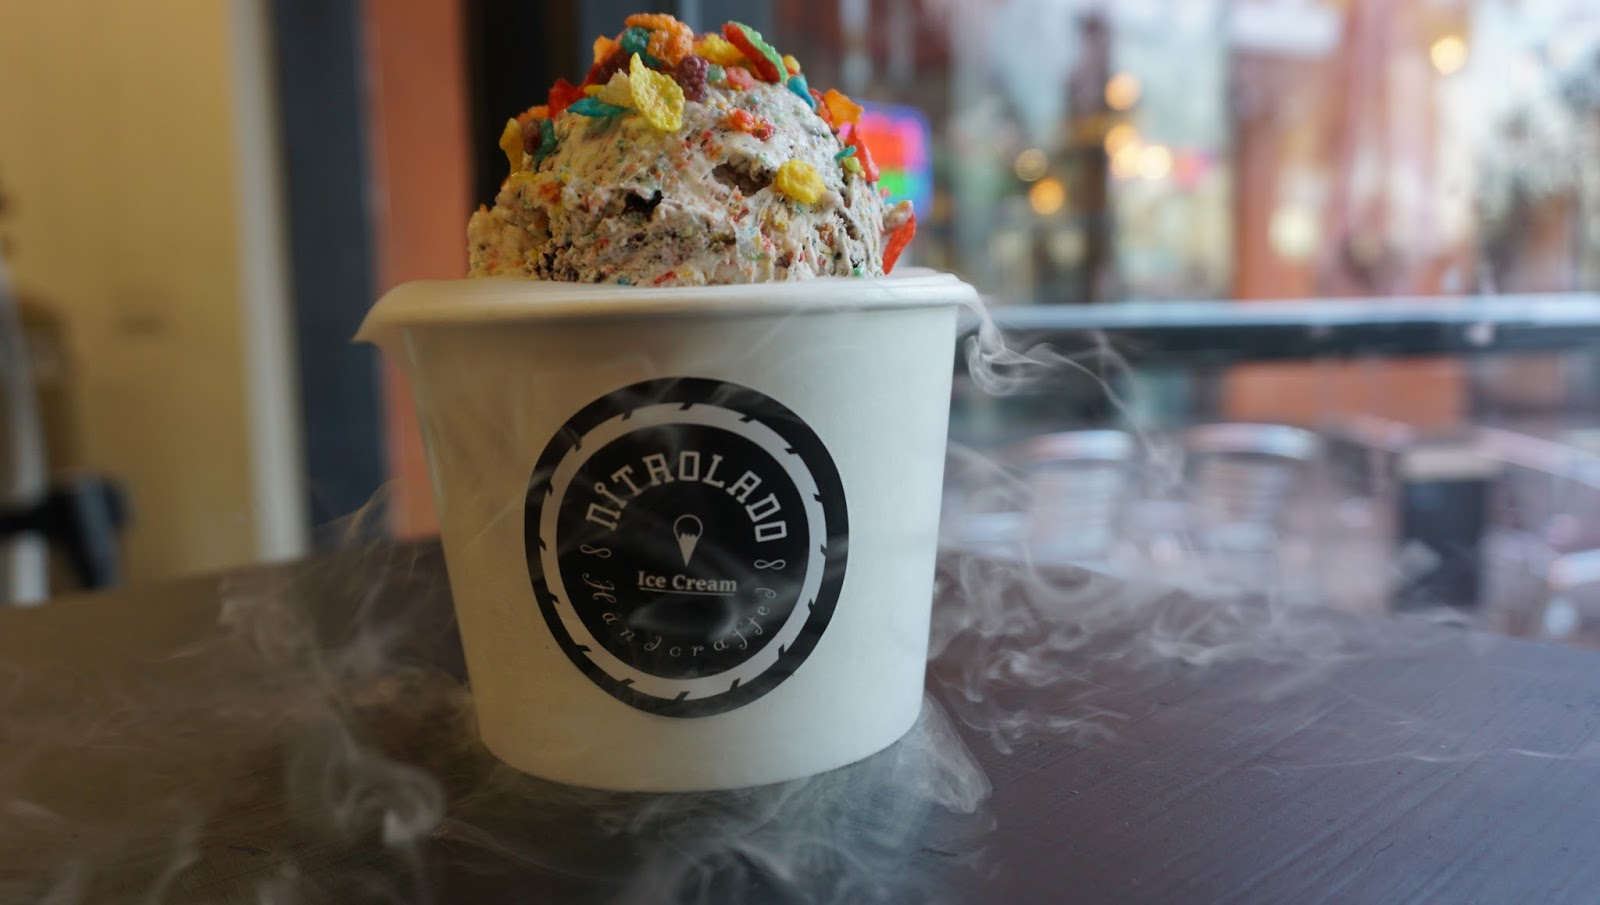 The New Fruity Pebbles Ice Cream Flavor From Nitrolado Might Be Better Than Creamistry